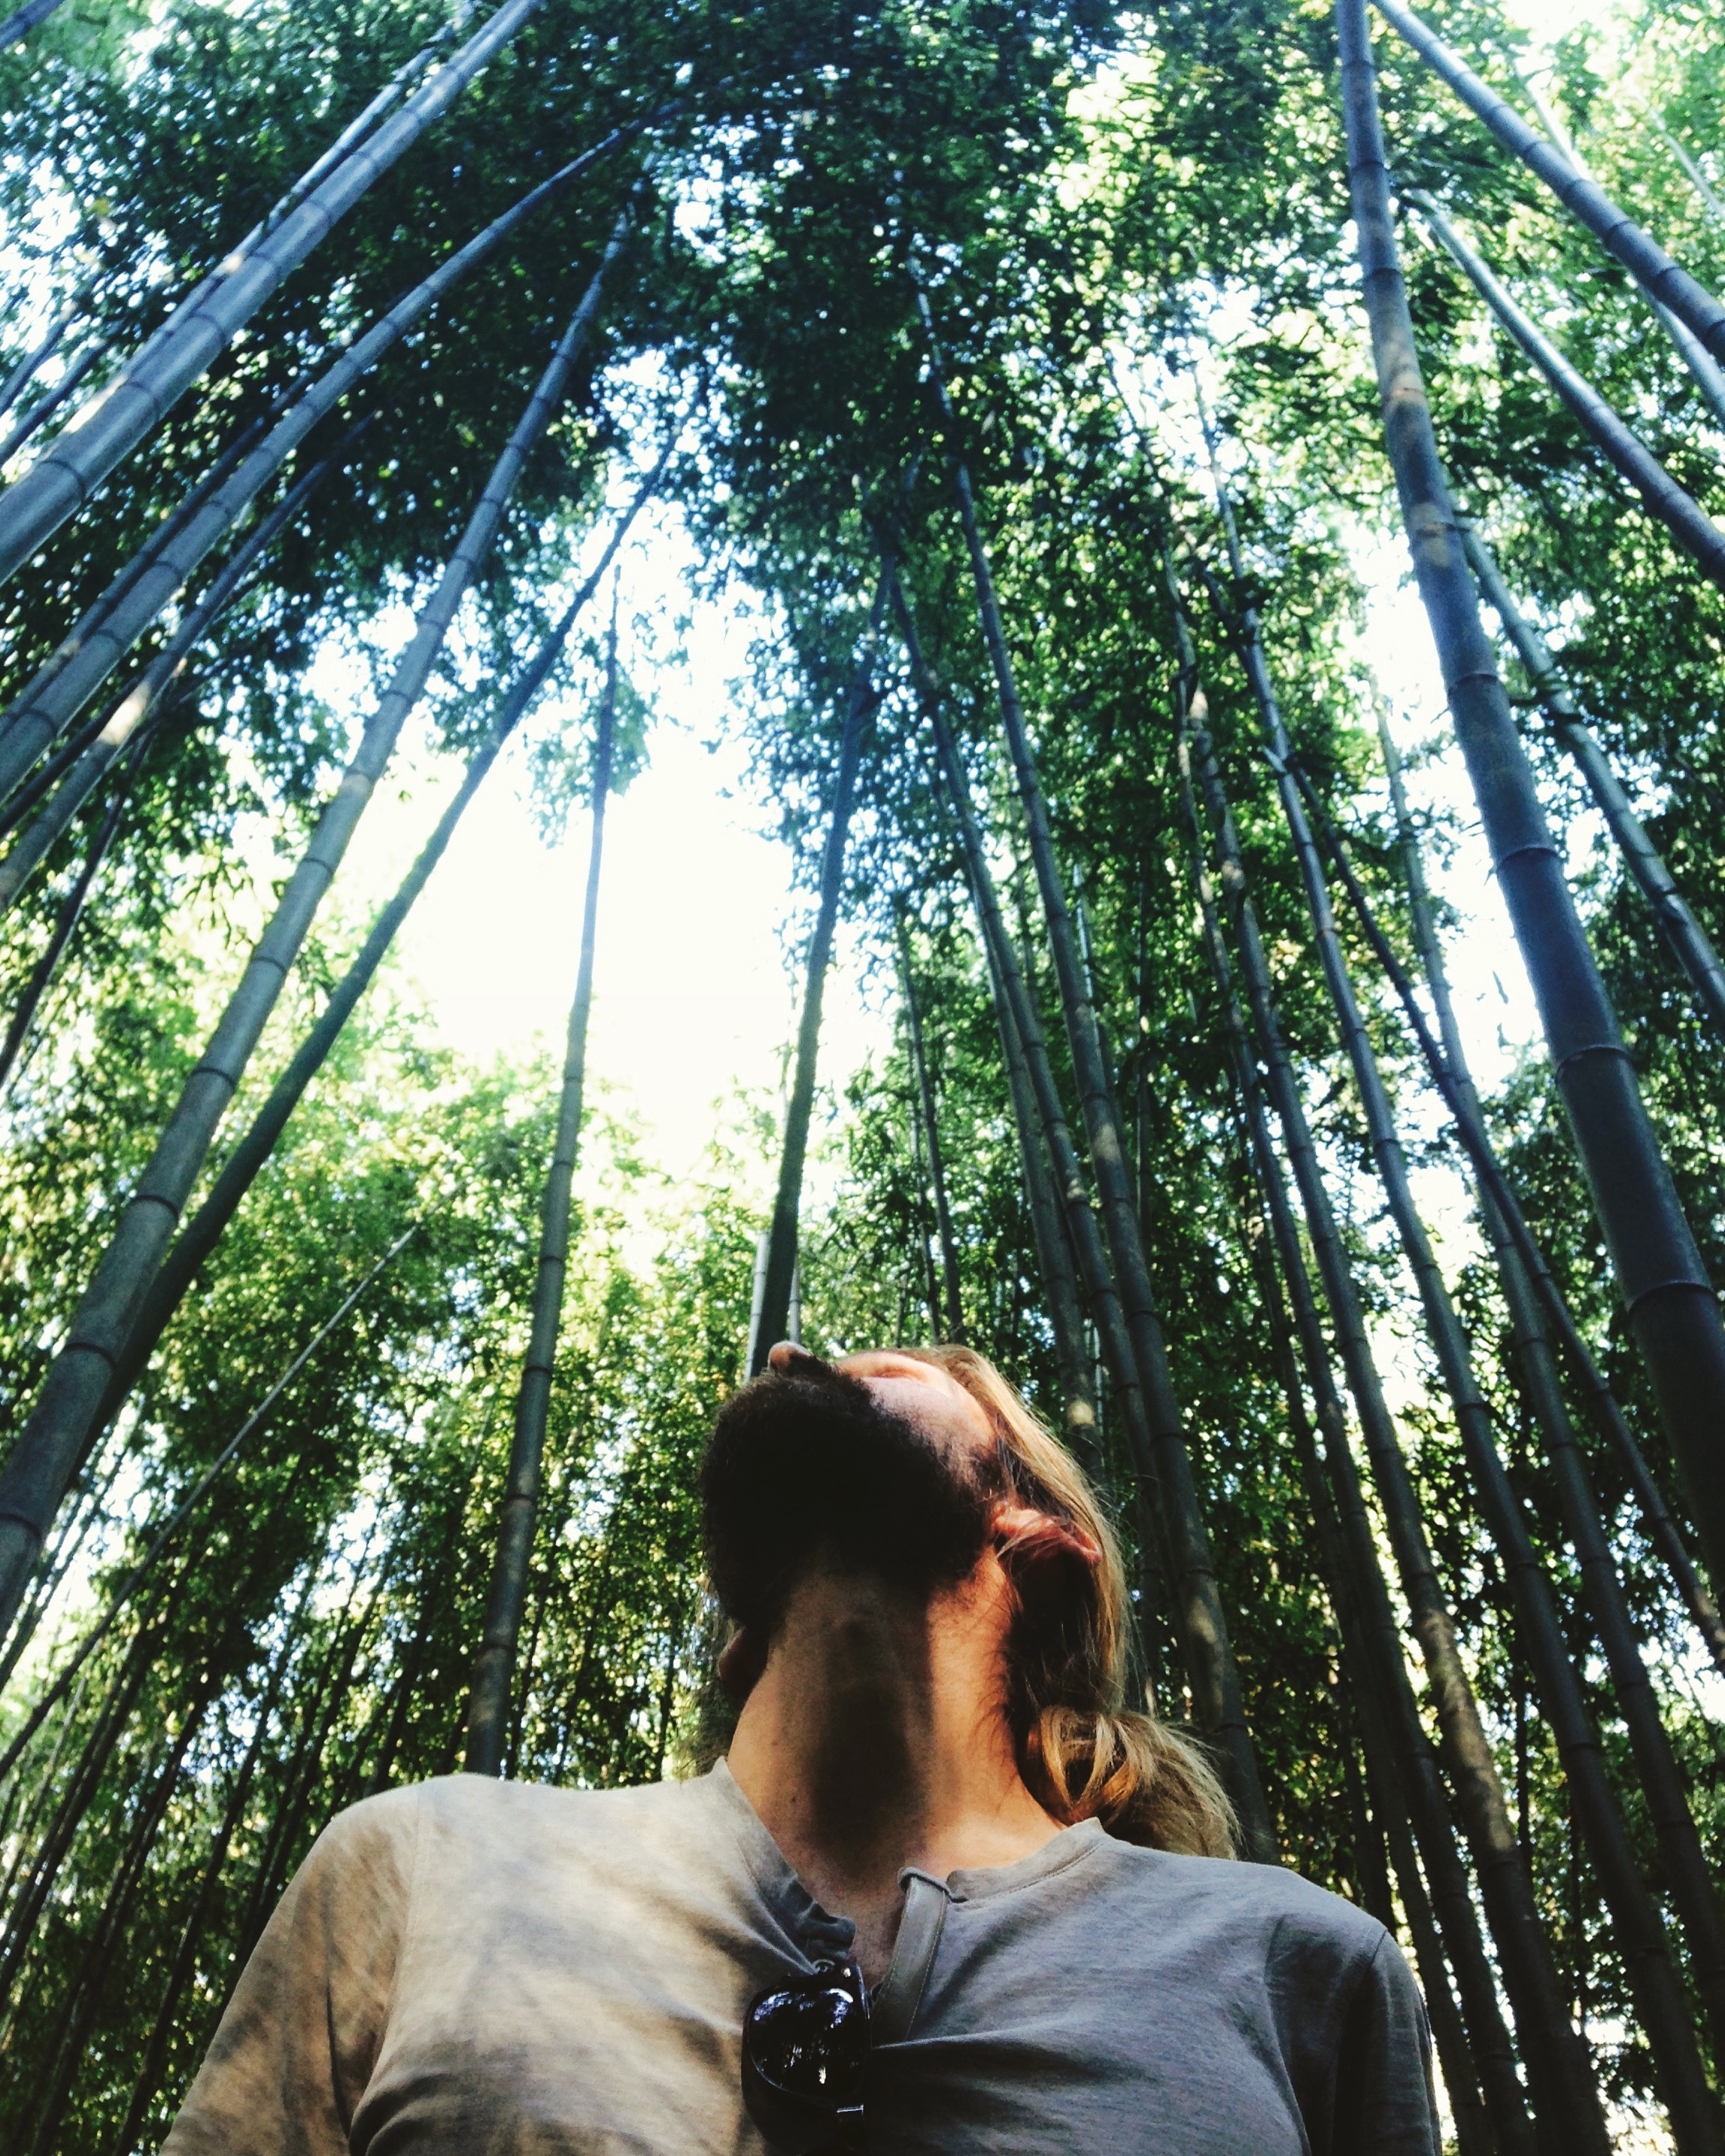 Arashiyama Bamboo Grove in Kyoto - today a year ago, Wylie left his corporate cubicle to join me on this crazy adventure <3